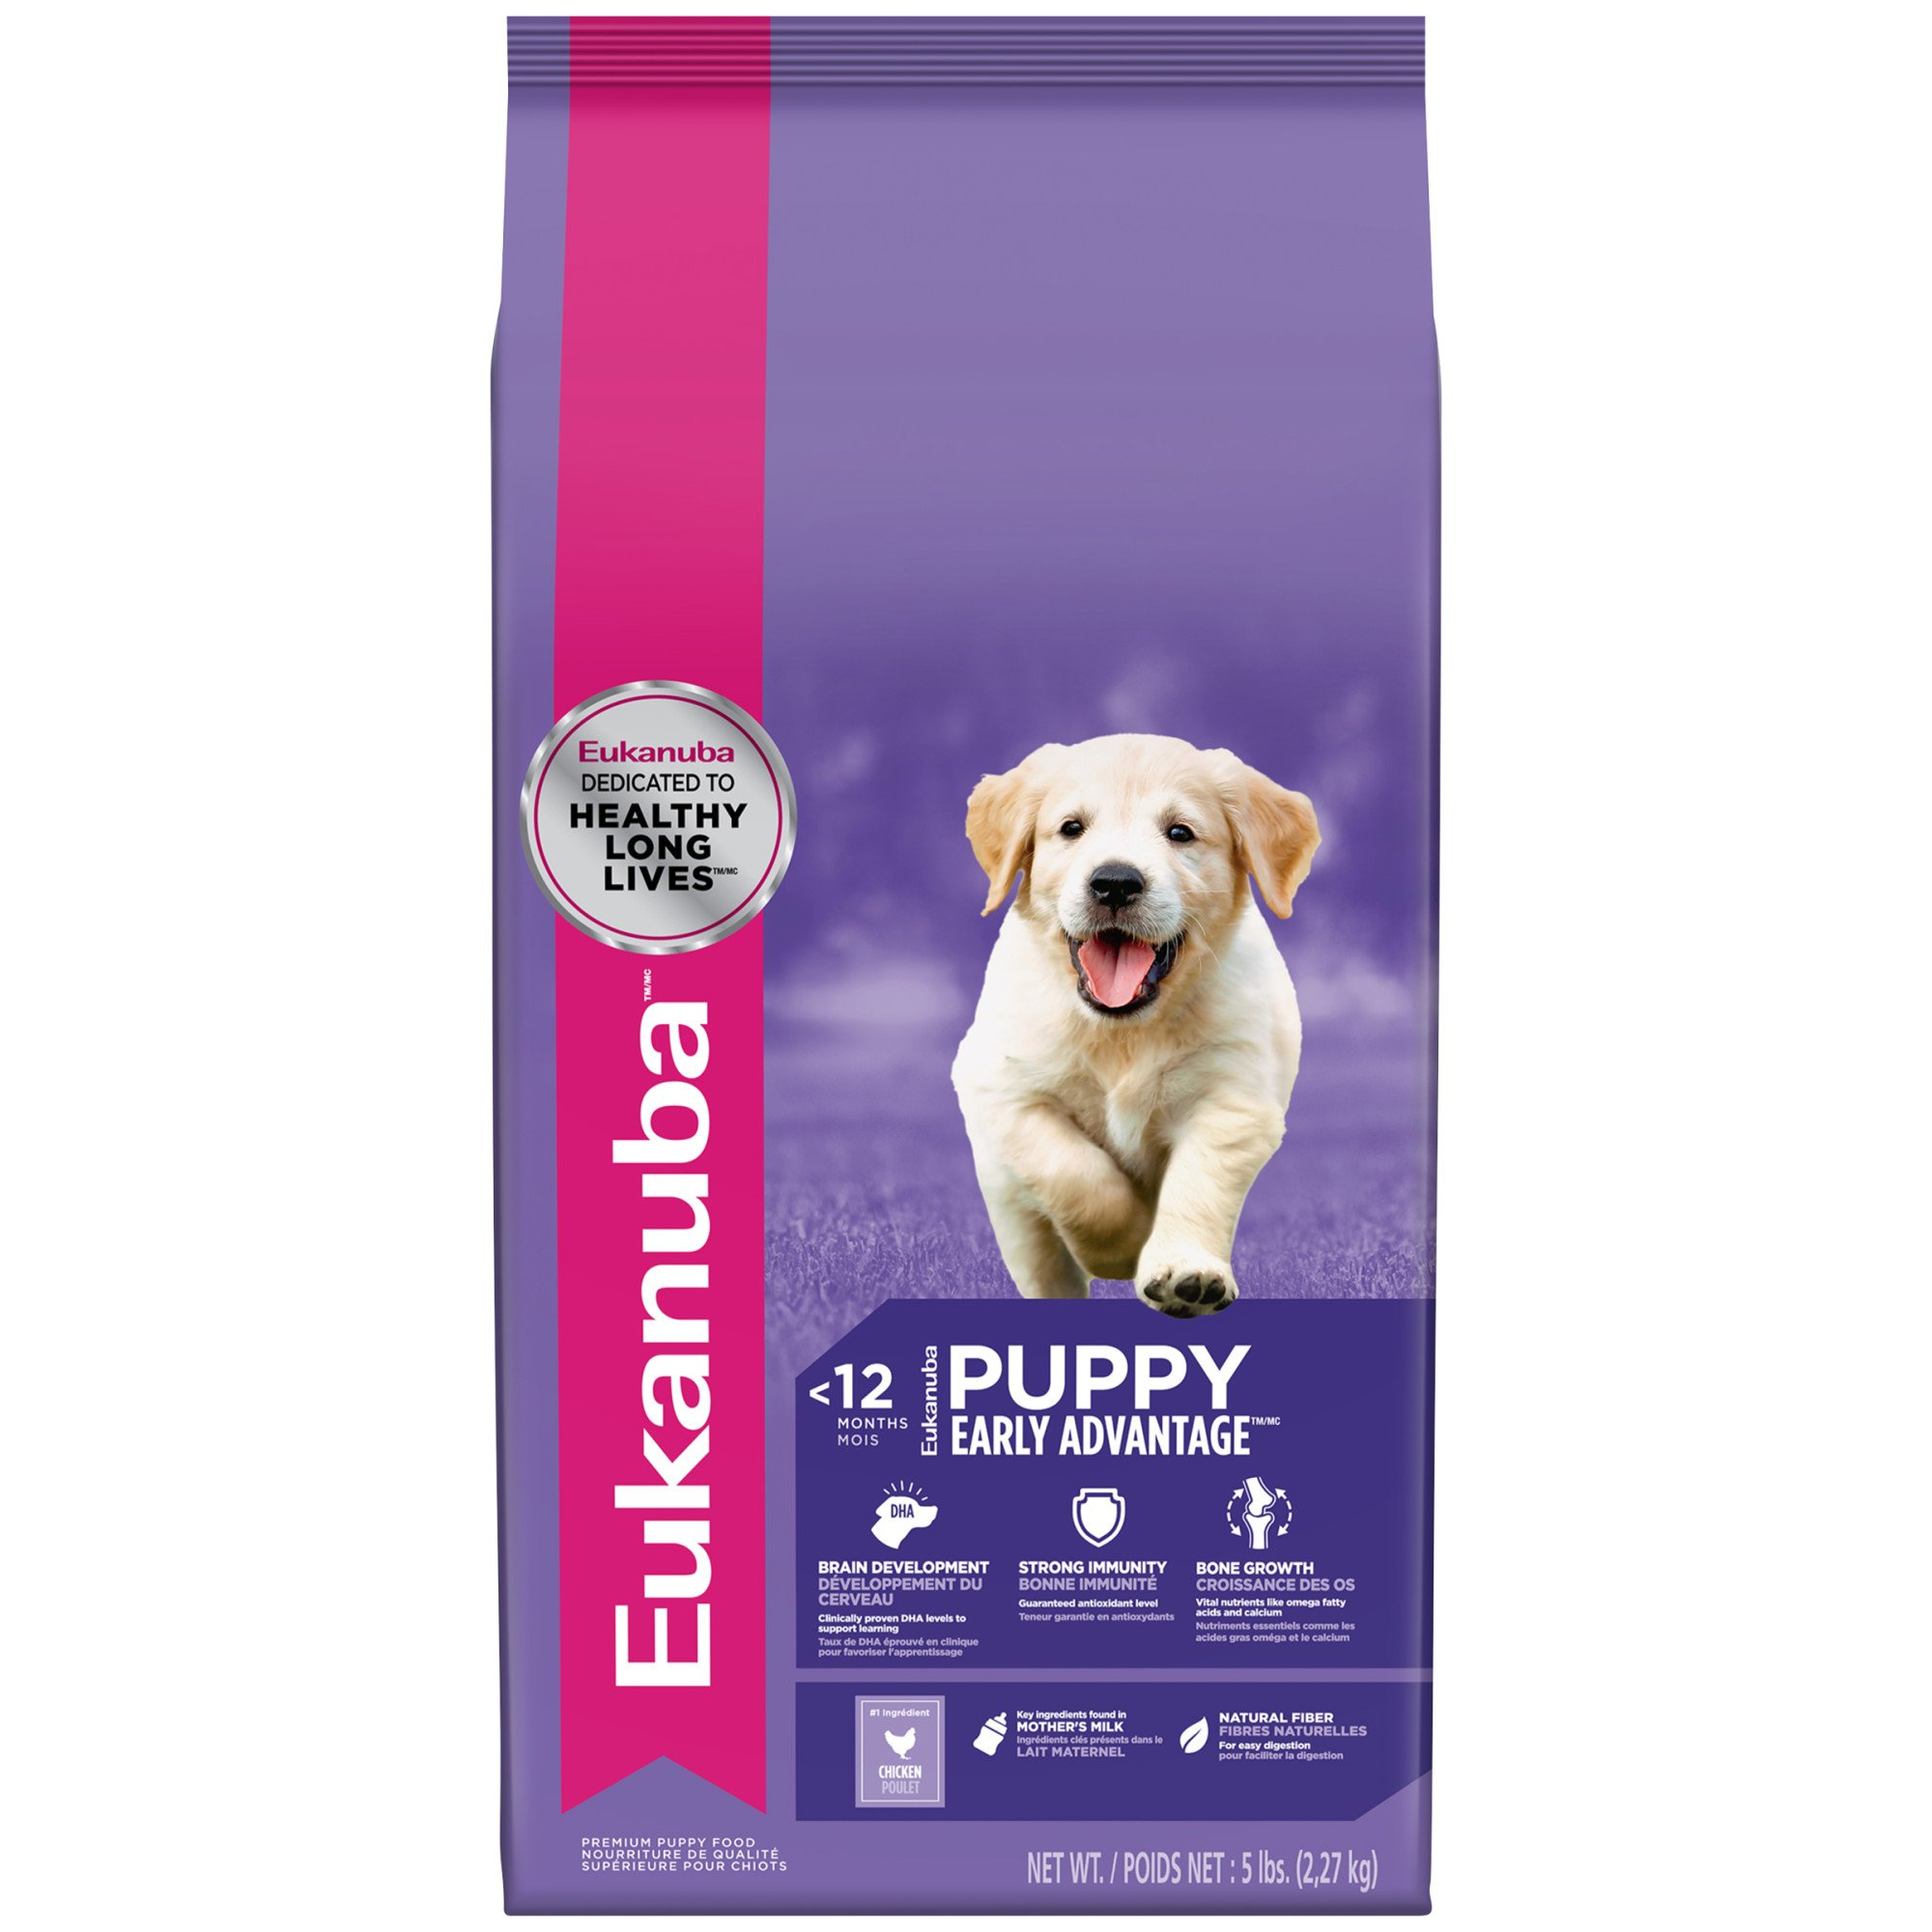 Big W Dog Food Eukanuba Puppy Food Petco